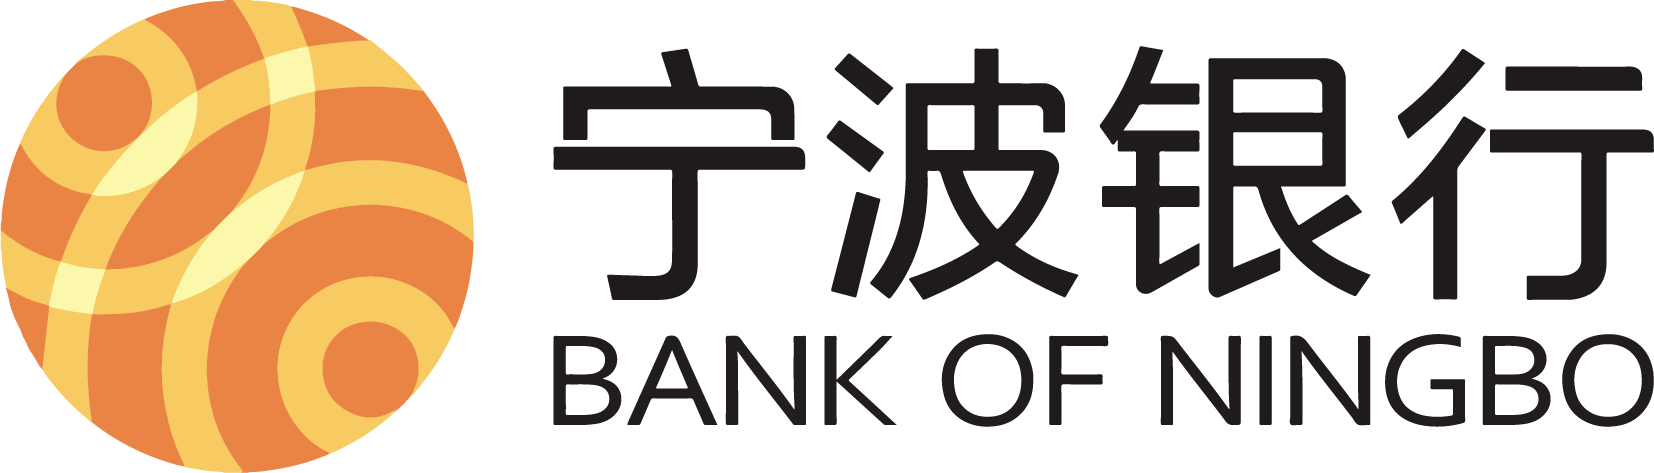 Bank of Ningbo Logo png